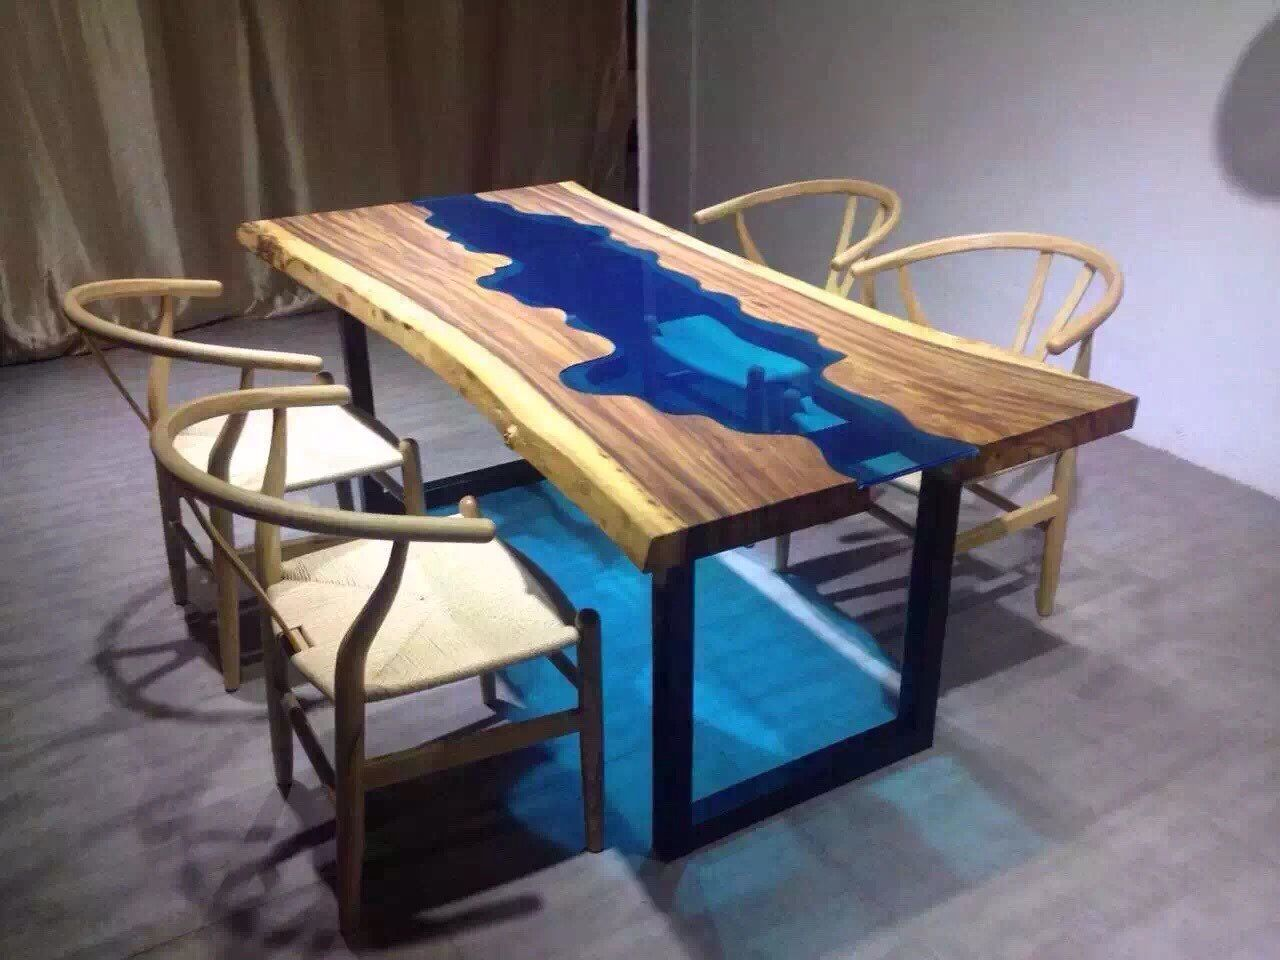 custom made acacia live edge river wood and glass dining table by chitownfurniture. Black Bedroom Furniture Sets. Home Design Ideas